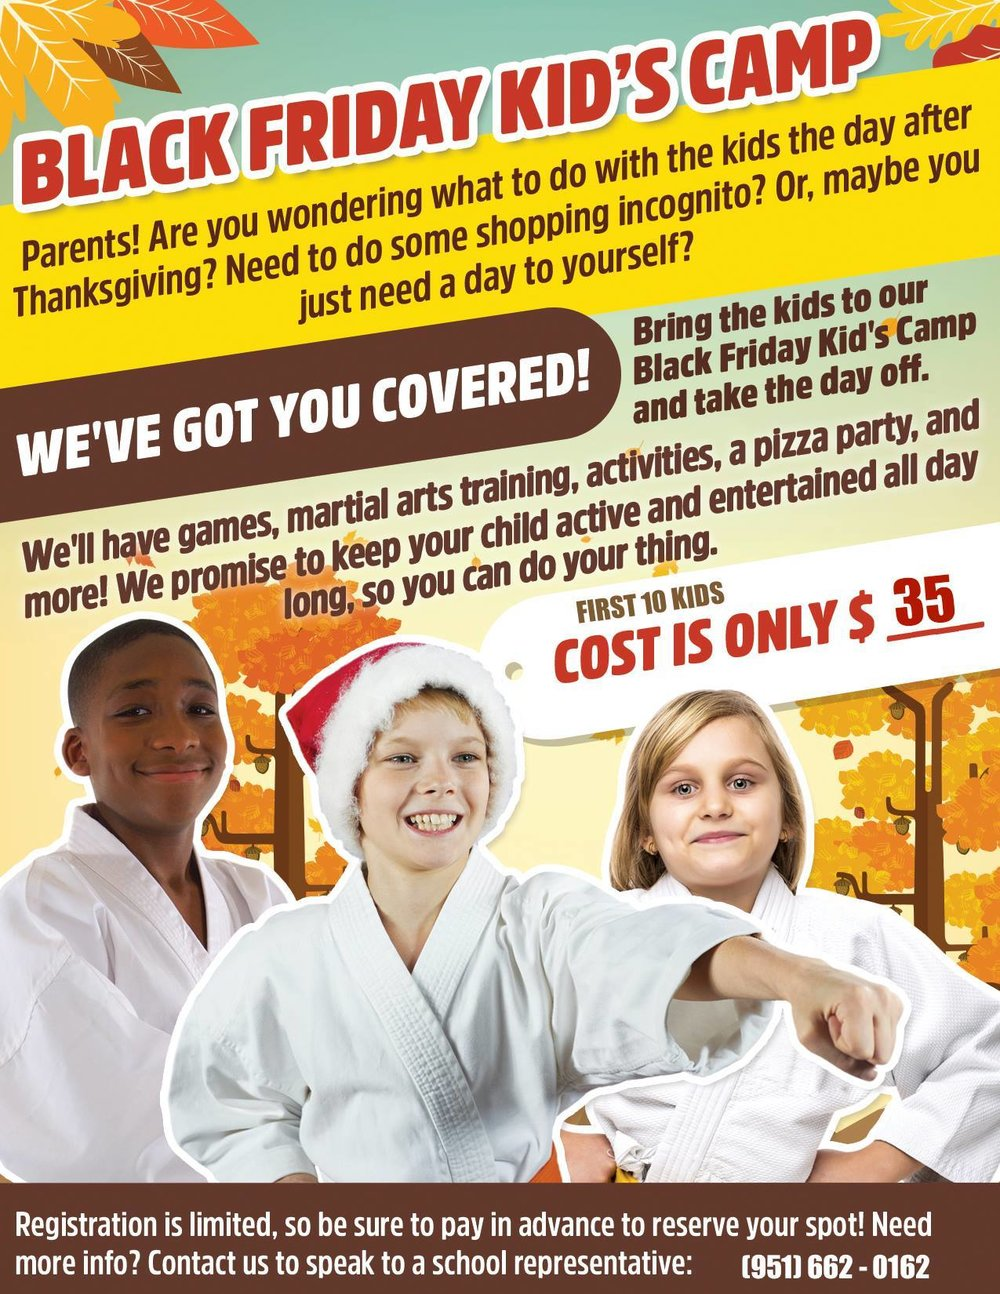 Black Friday Kids Camp